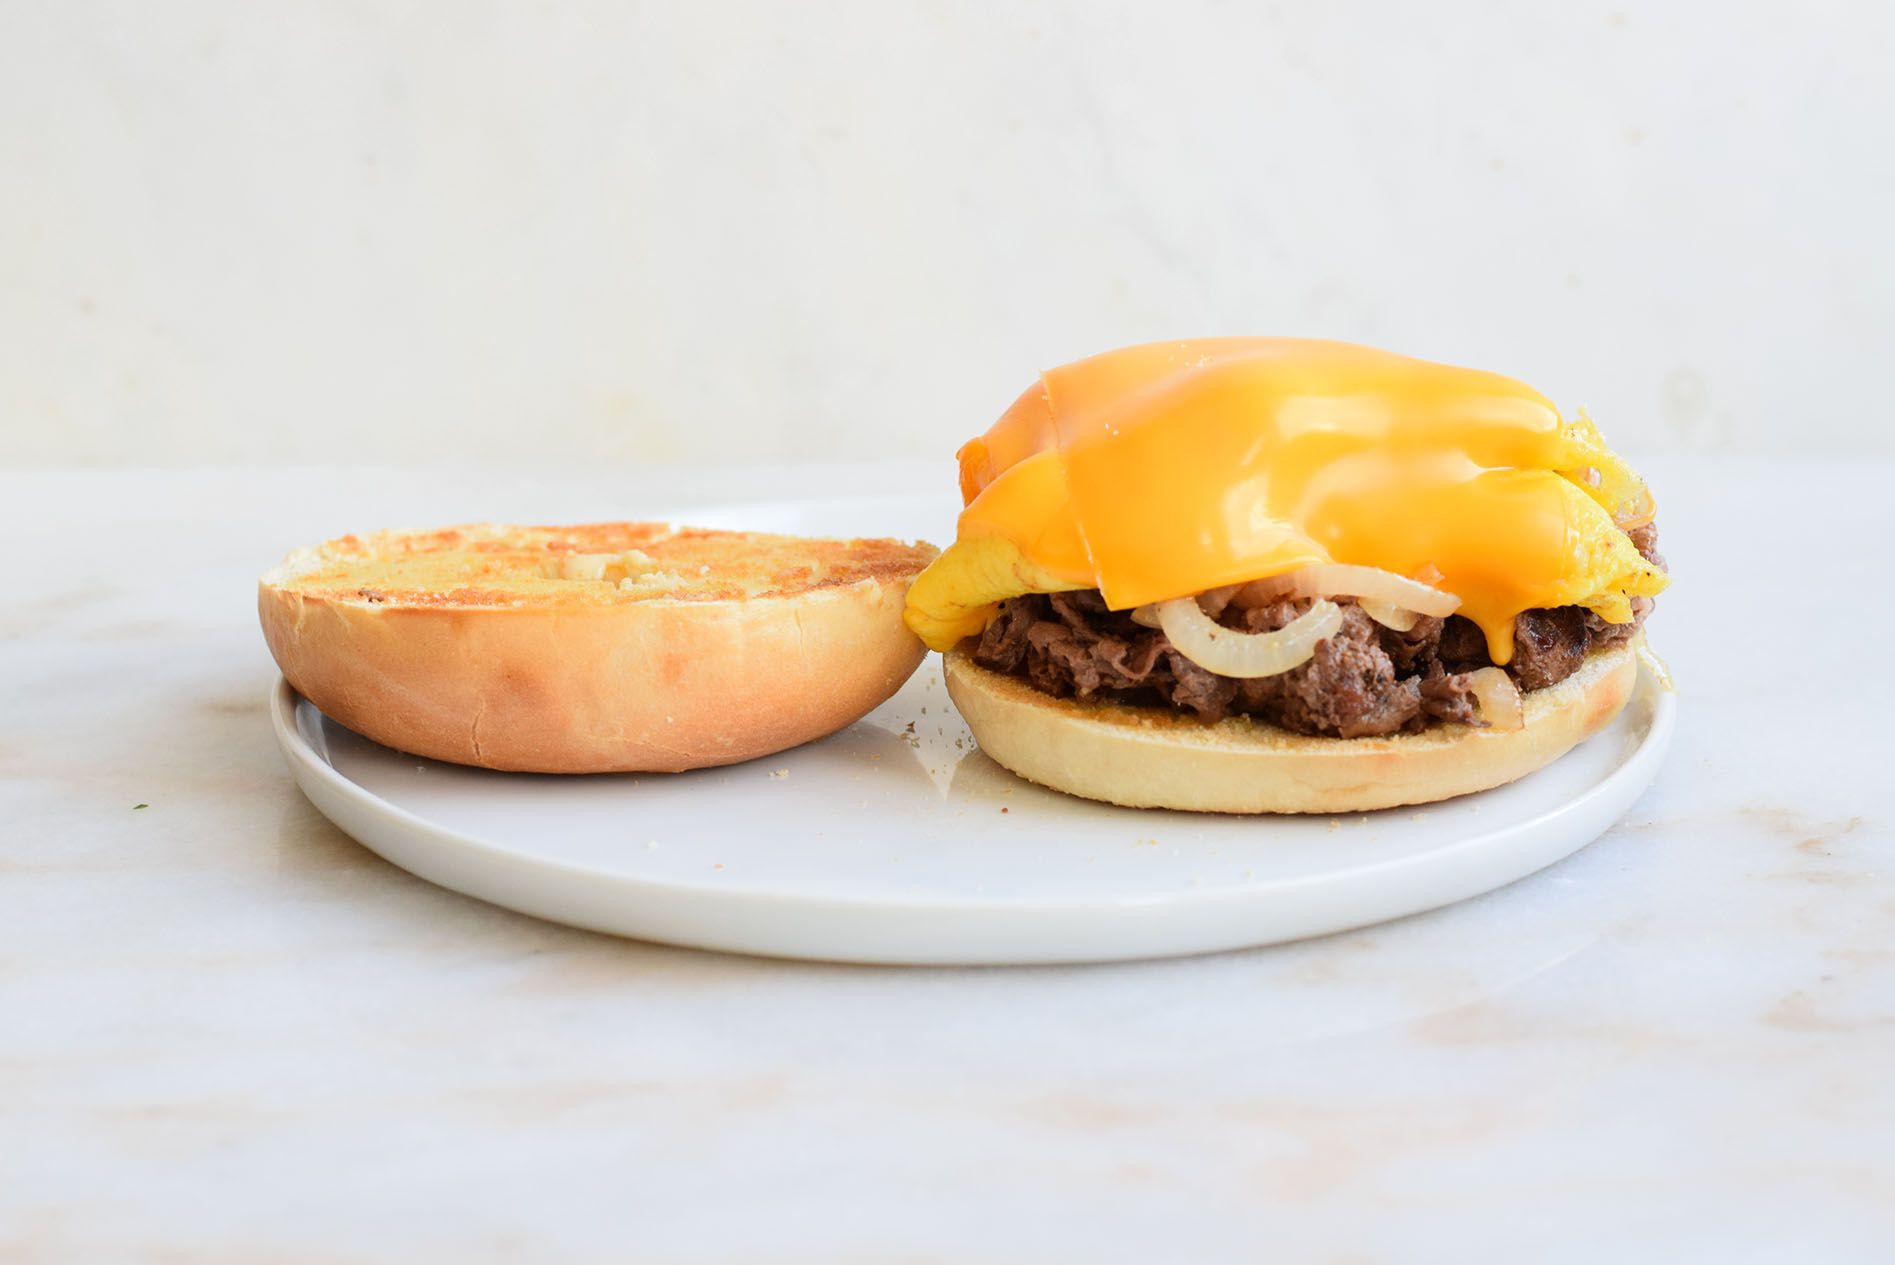 Bagel topped with steak, egg, and cheese